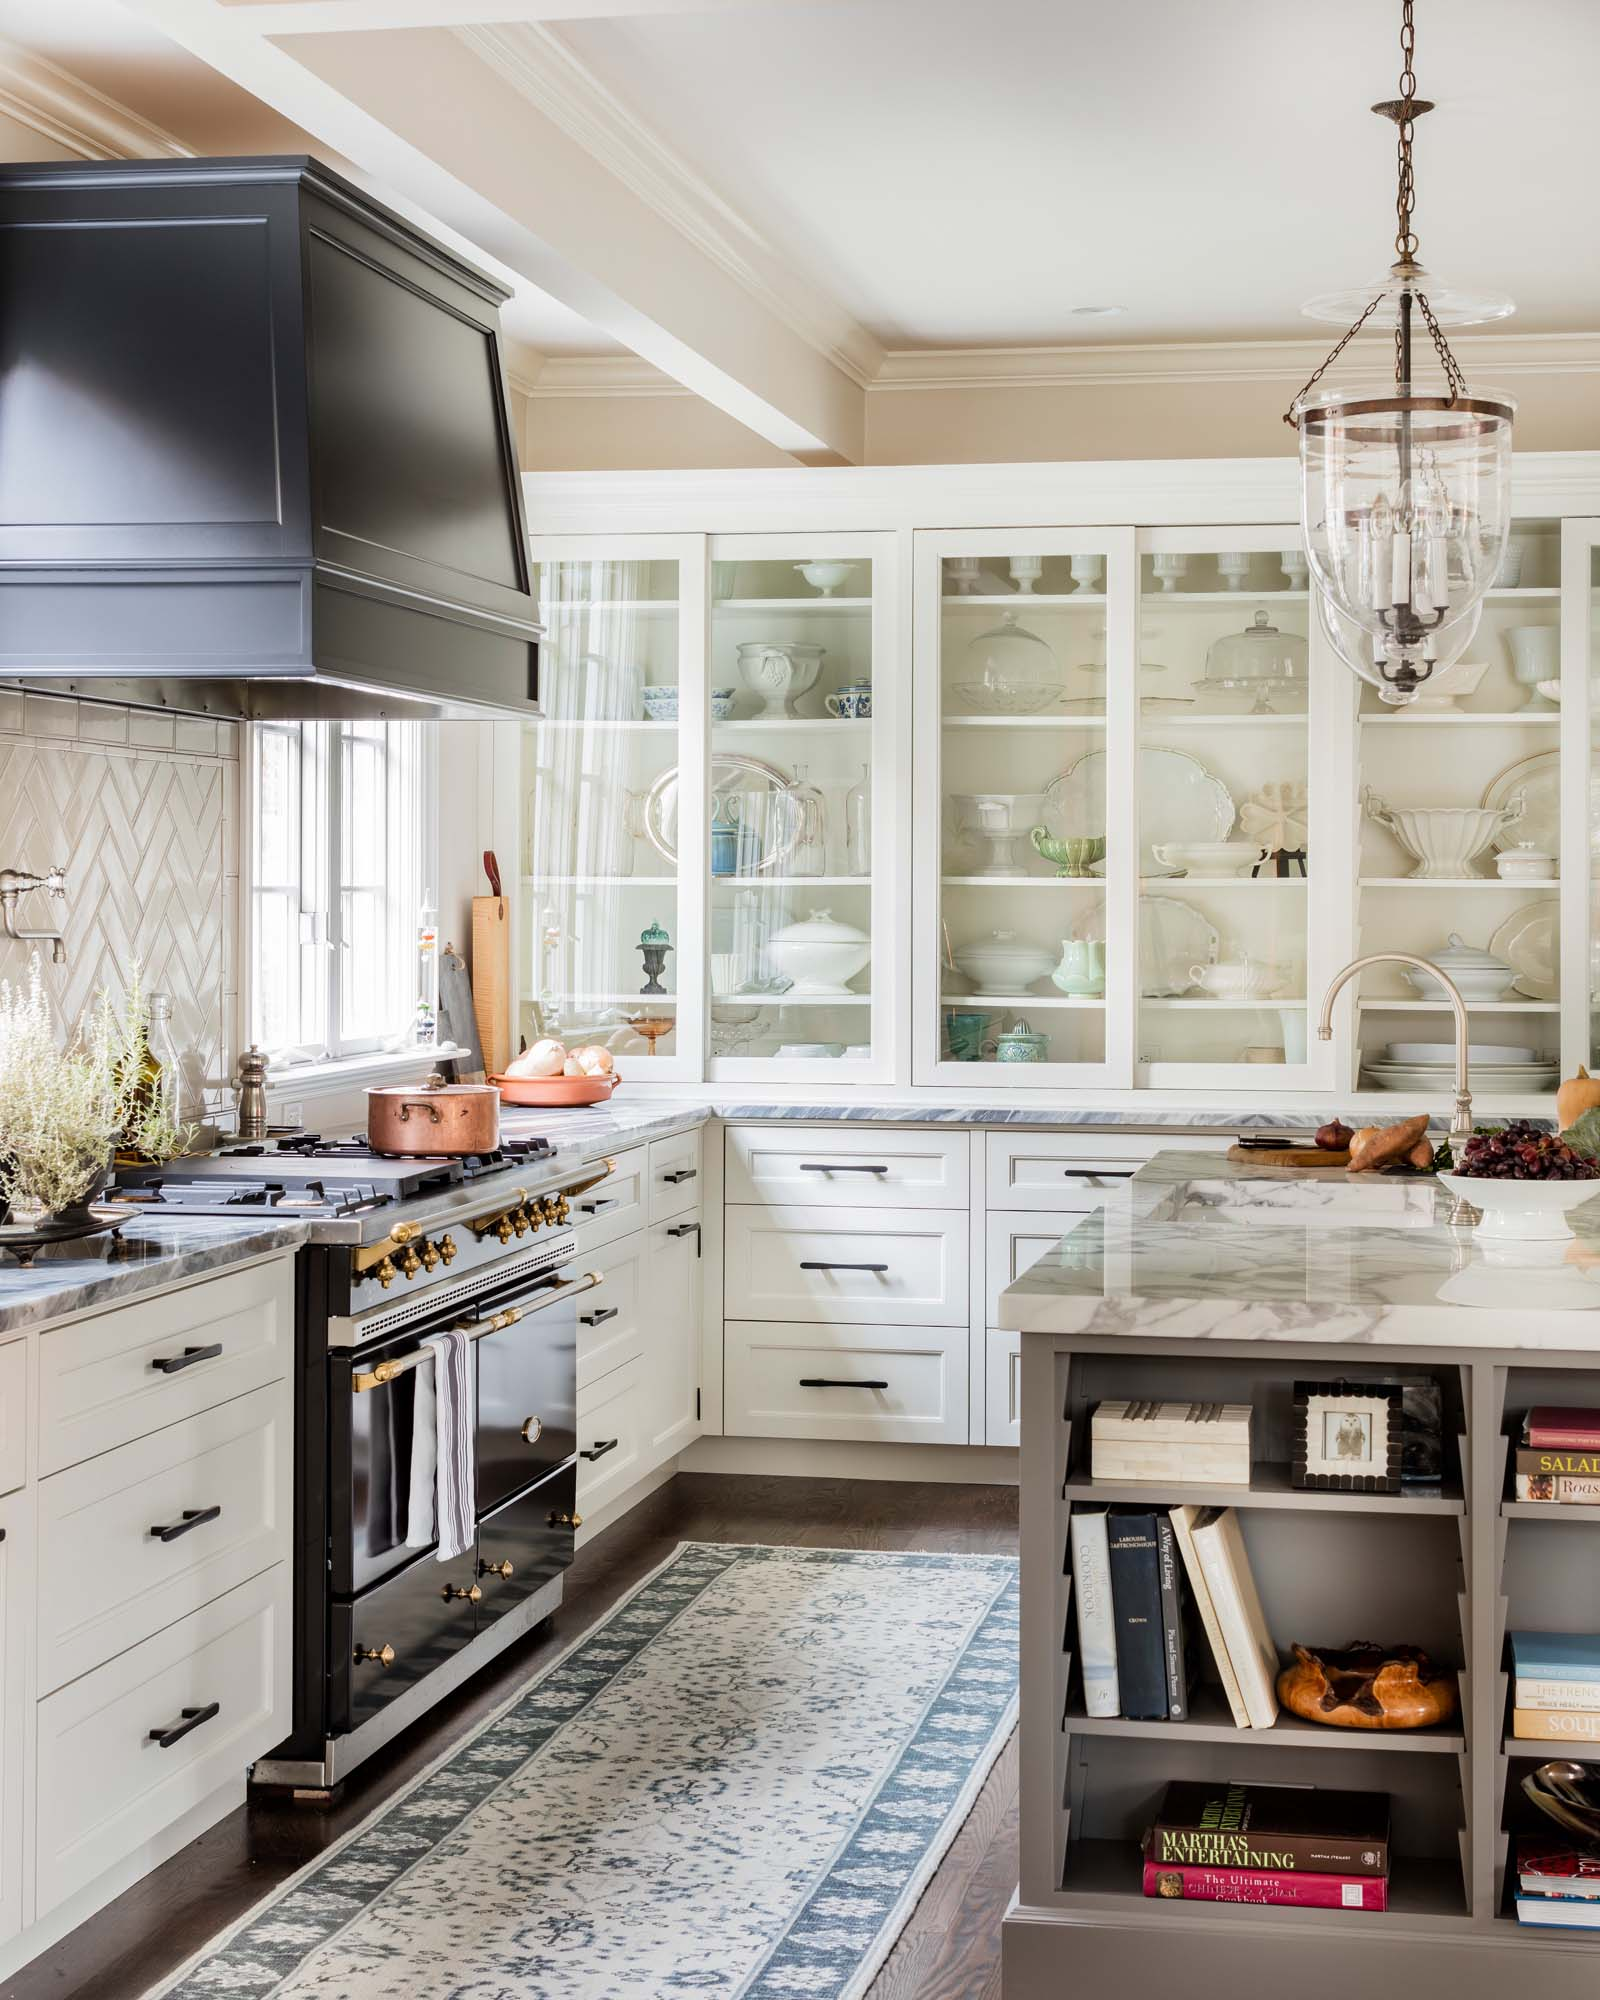 Kitchen with center island, drawers, shelves with glass doors and exhaust hood, Lacanche Sully range, Calcutta marble, birds beak, custom white cabinets, inset cabinet, inset cabinetry, copper pot, Rohl, bridge faucet, iron stone, ironstone, milk glass, brass